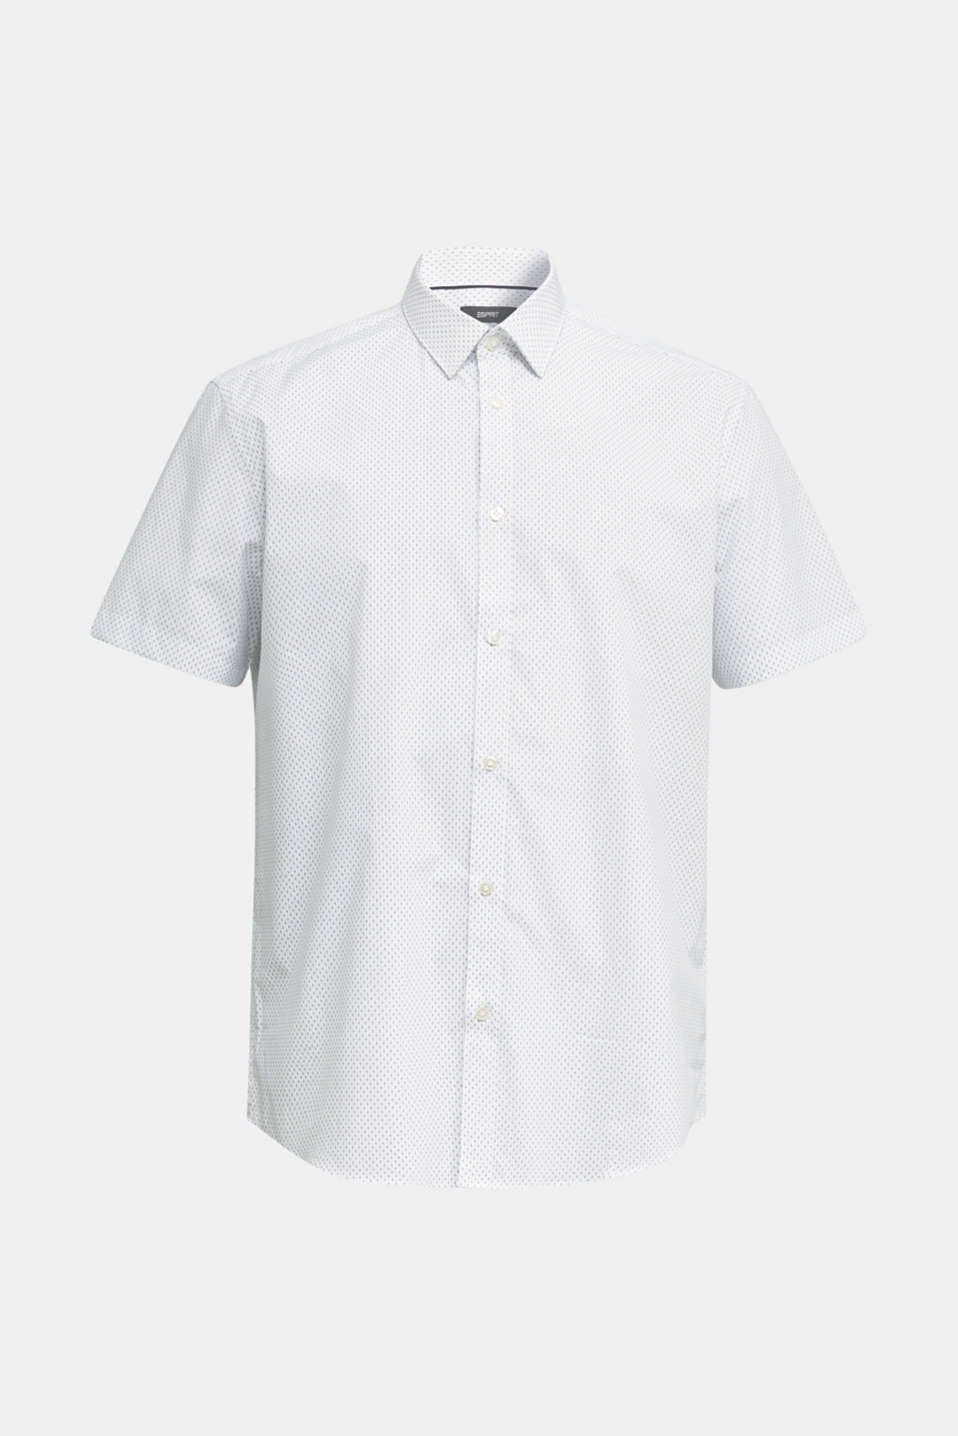 Shirt with mechanical stretch, 100% cotton, WHITE 4, detail image number 7